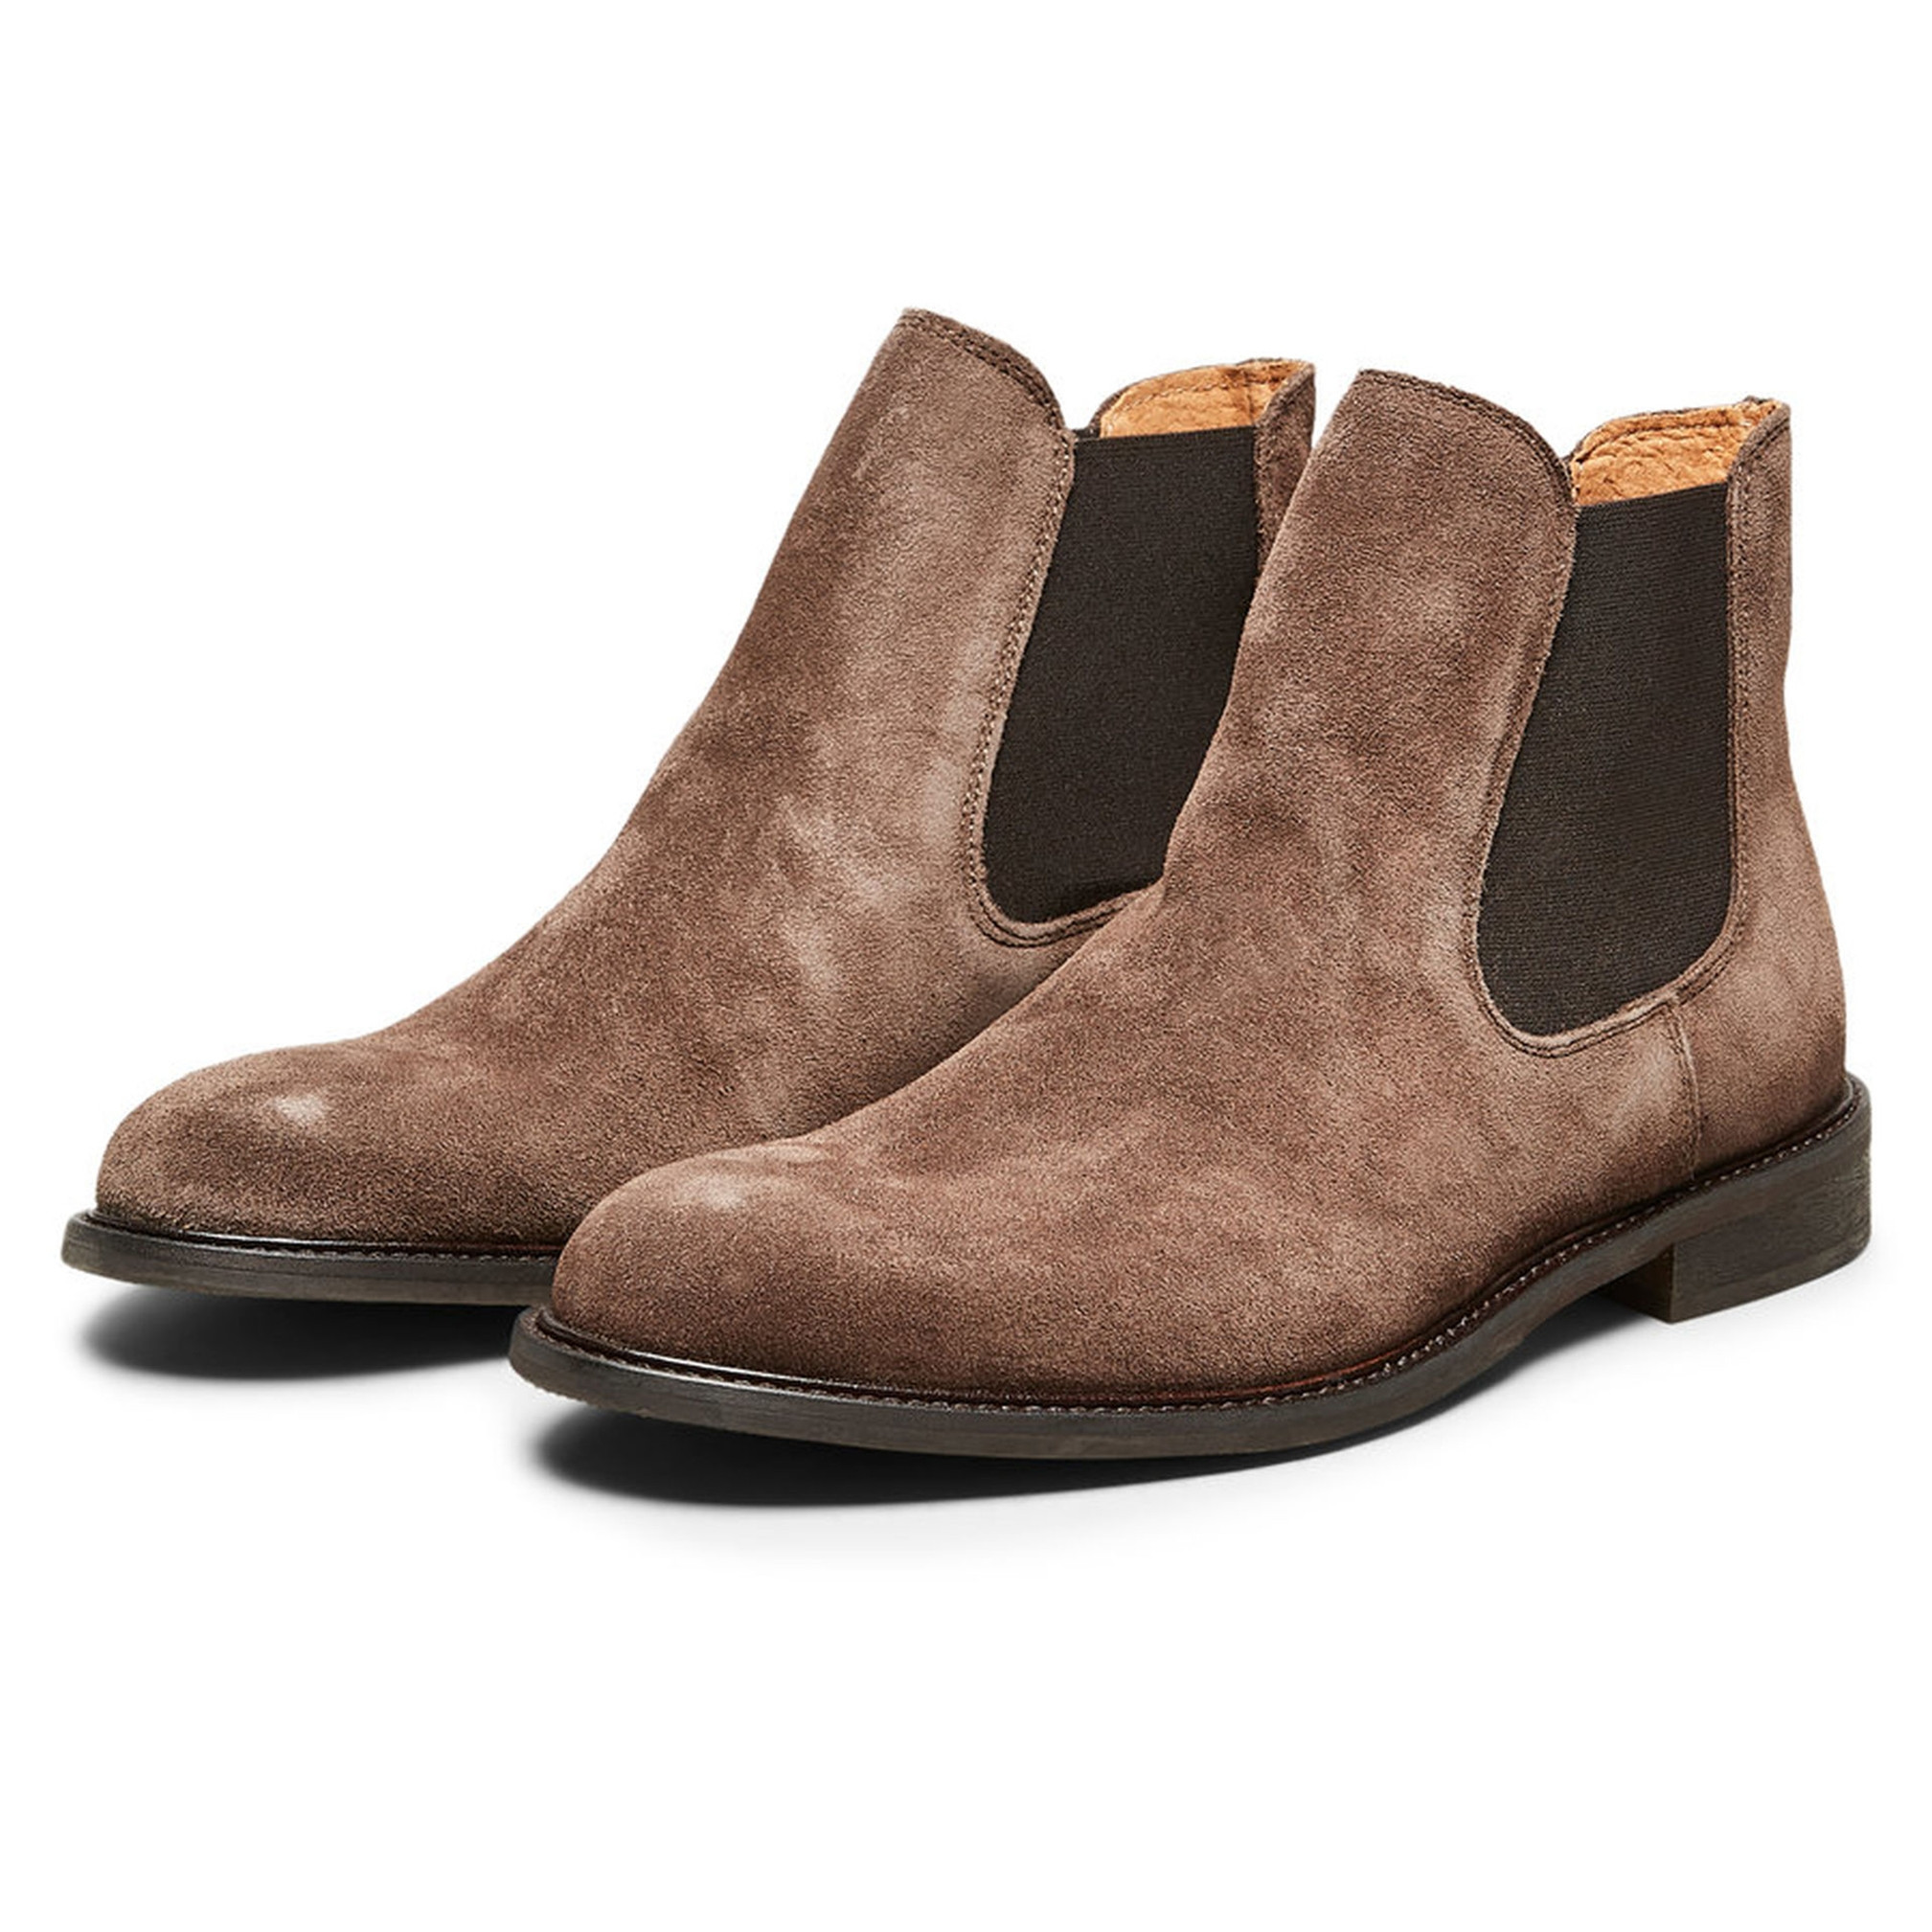 b6e551e8f3c57 Selected Mens Baxter Suede Leather Chelsea Boots Boots Cocoa Brown   Jean  Scene